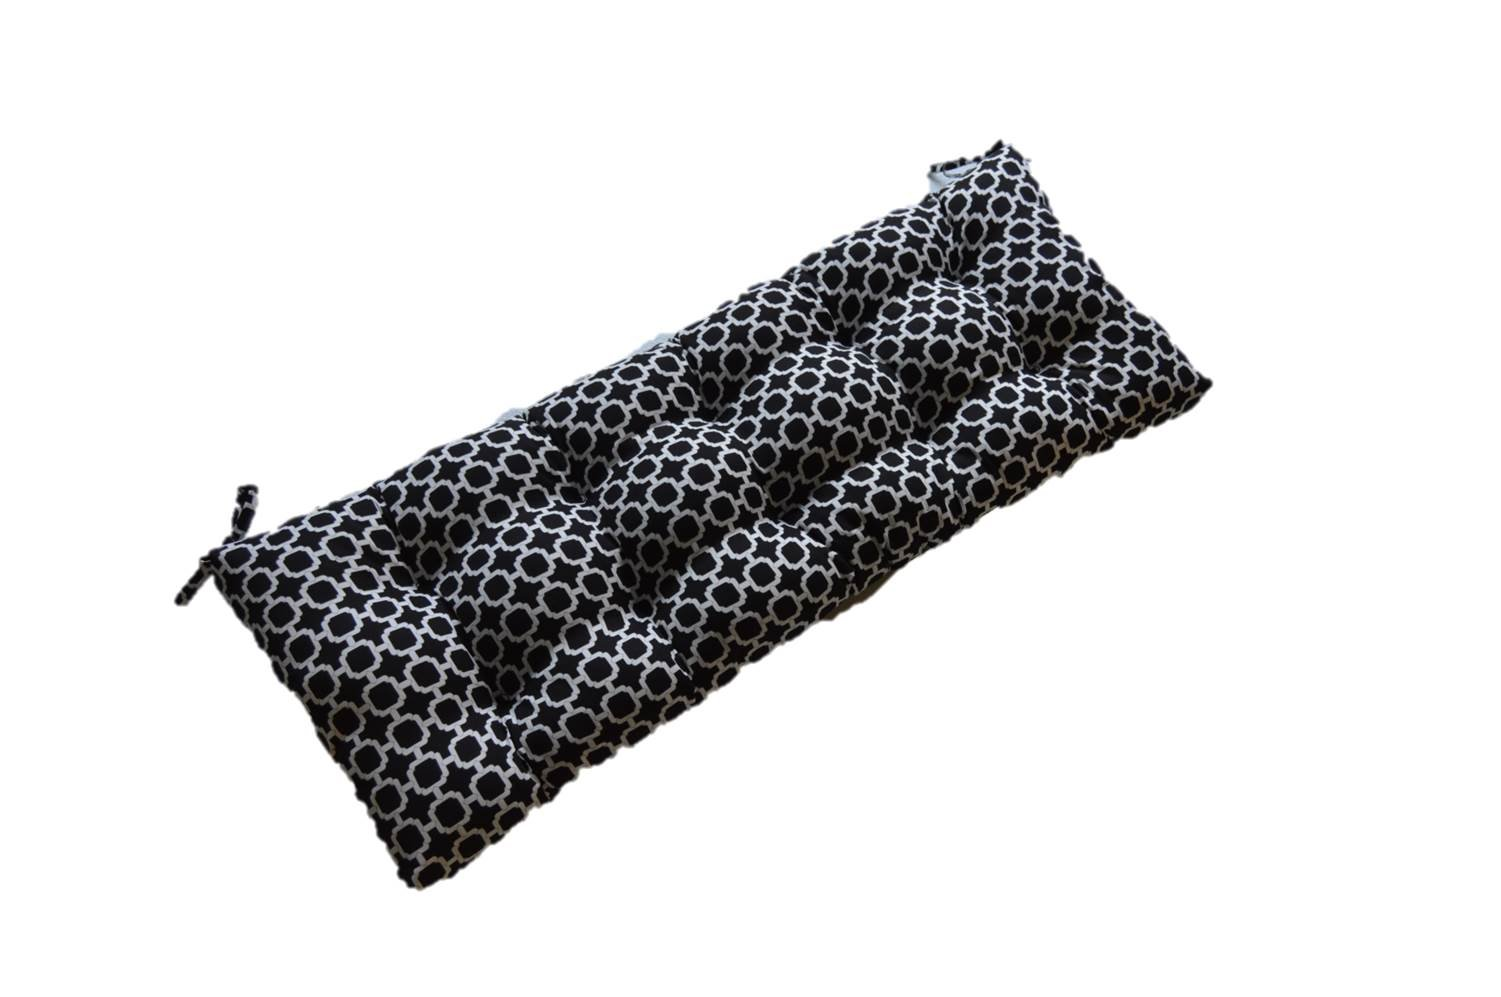 Black and White Geometric Hockley Print Indoor / Outdoor Tufted Cushion for Bench, Swing, Glider - Choose Size (39'' x 17 1/2'')